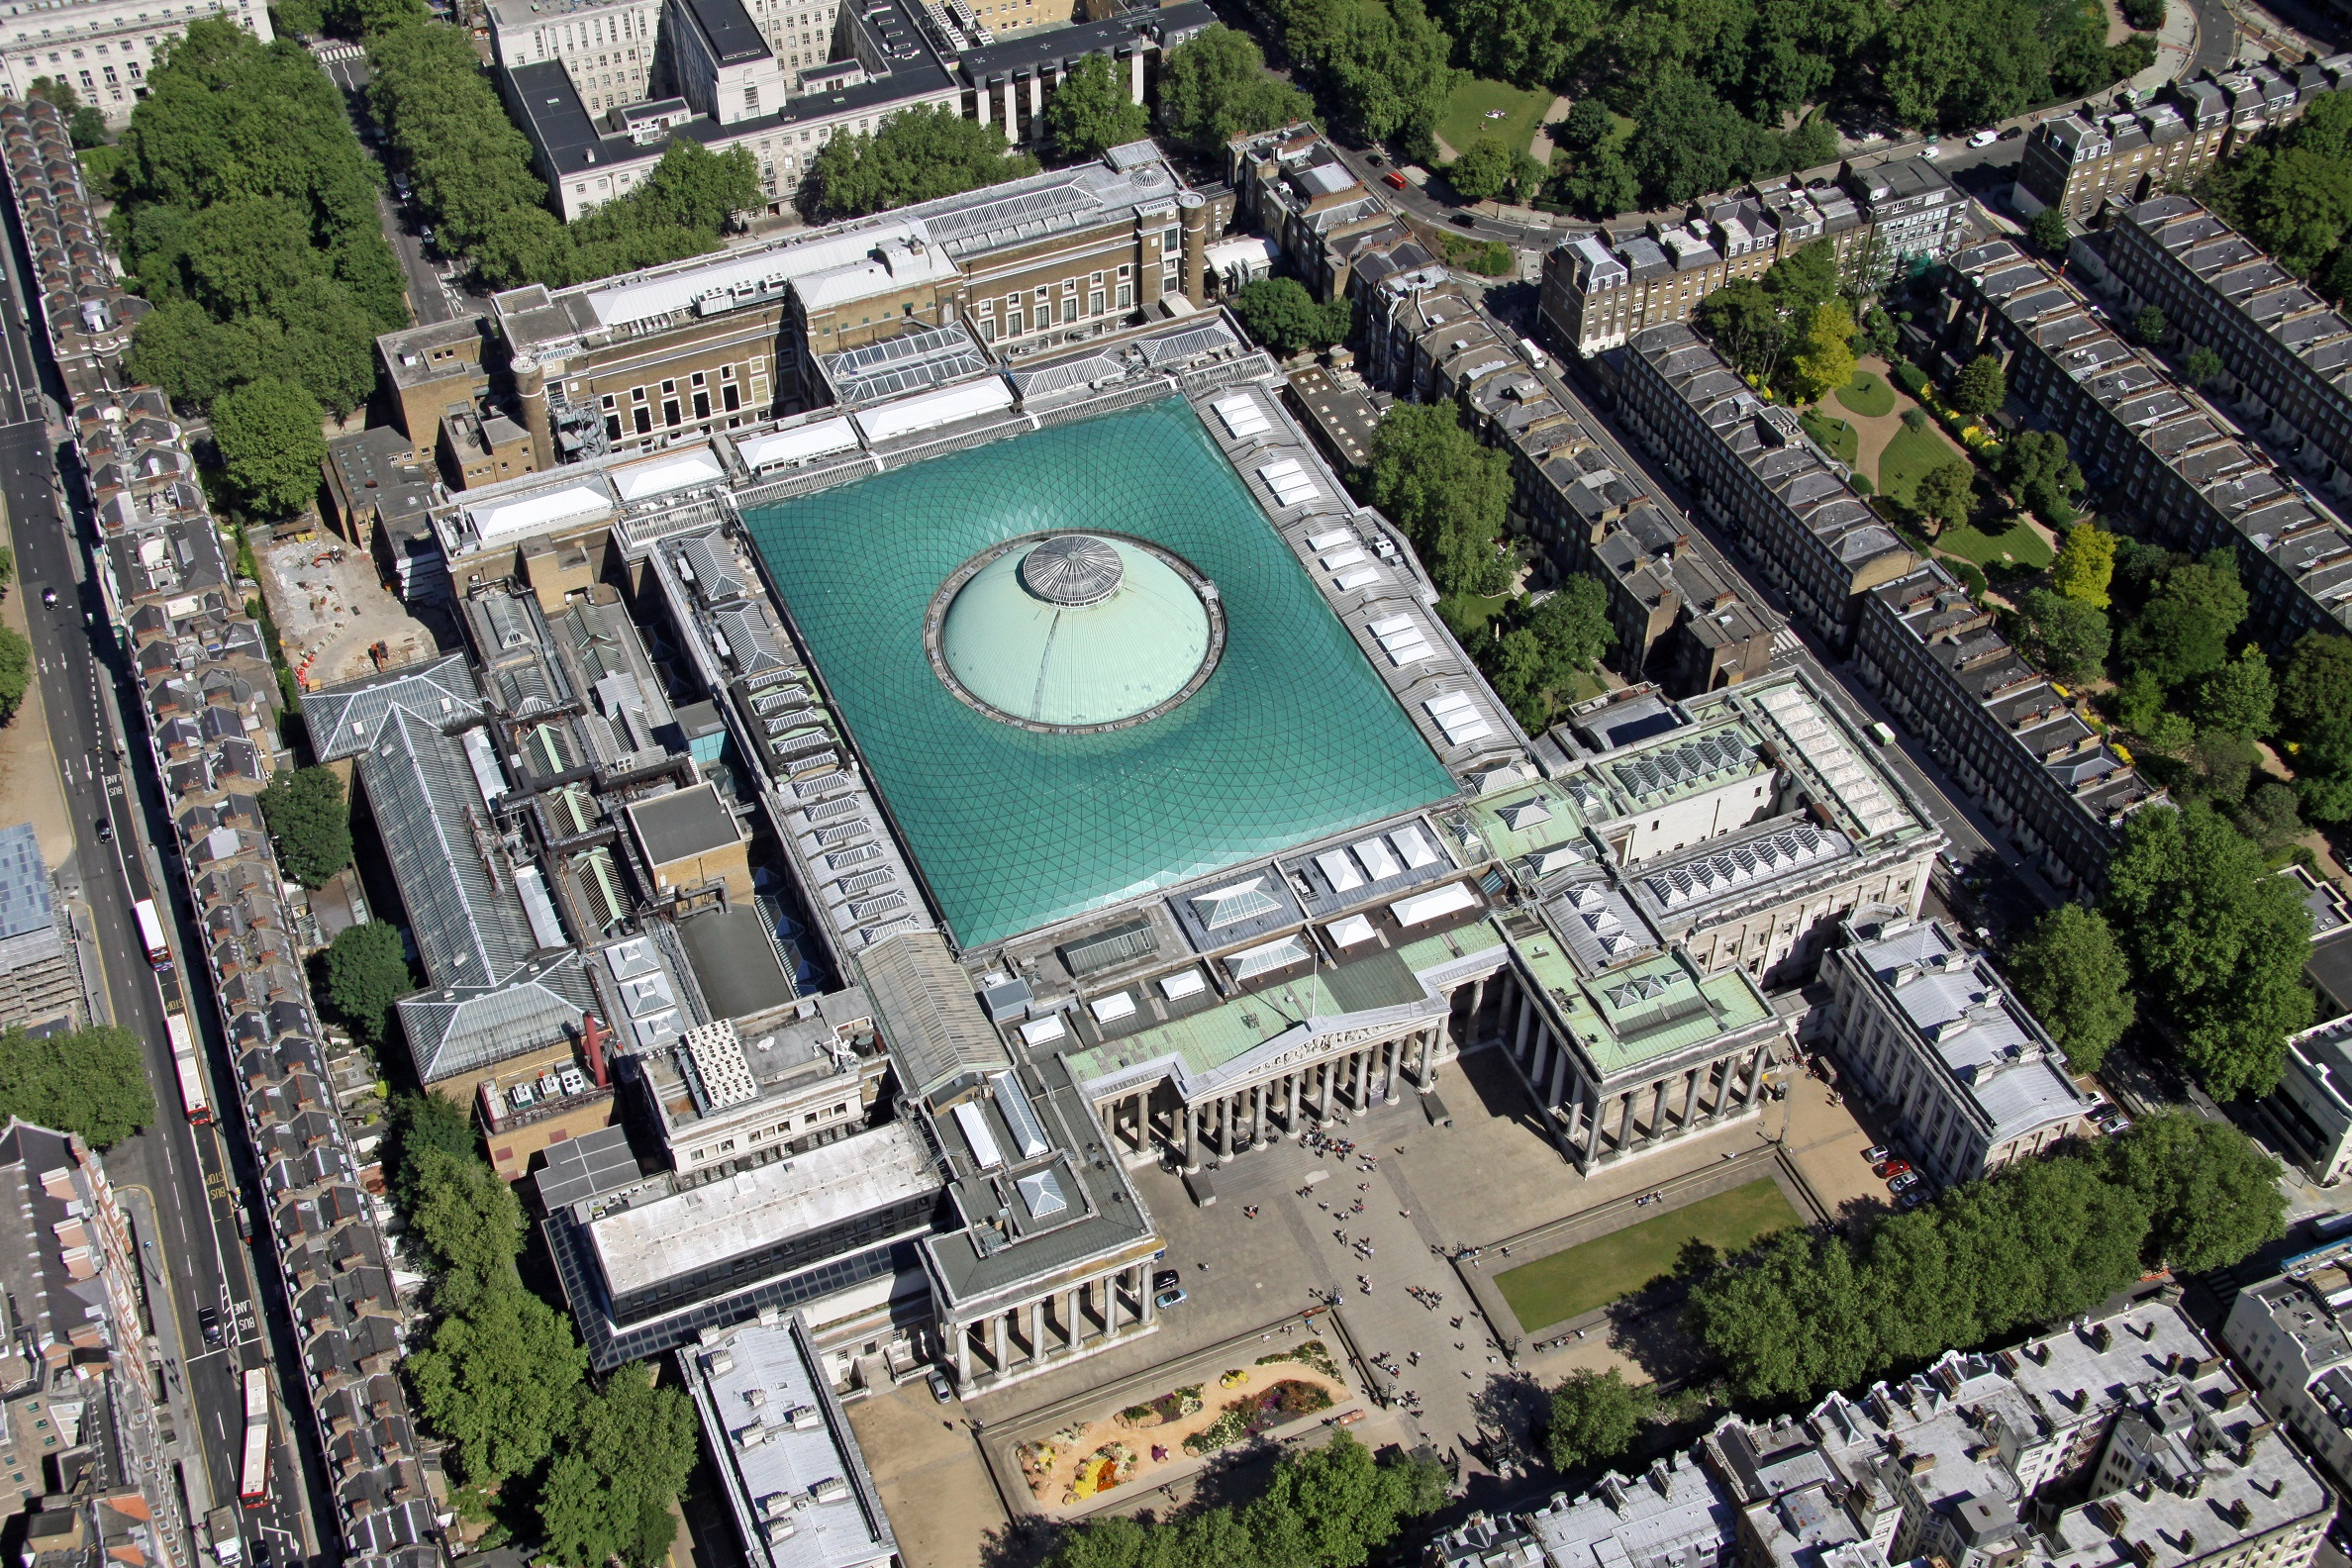 Ariel view of The British Museum.